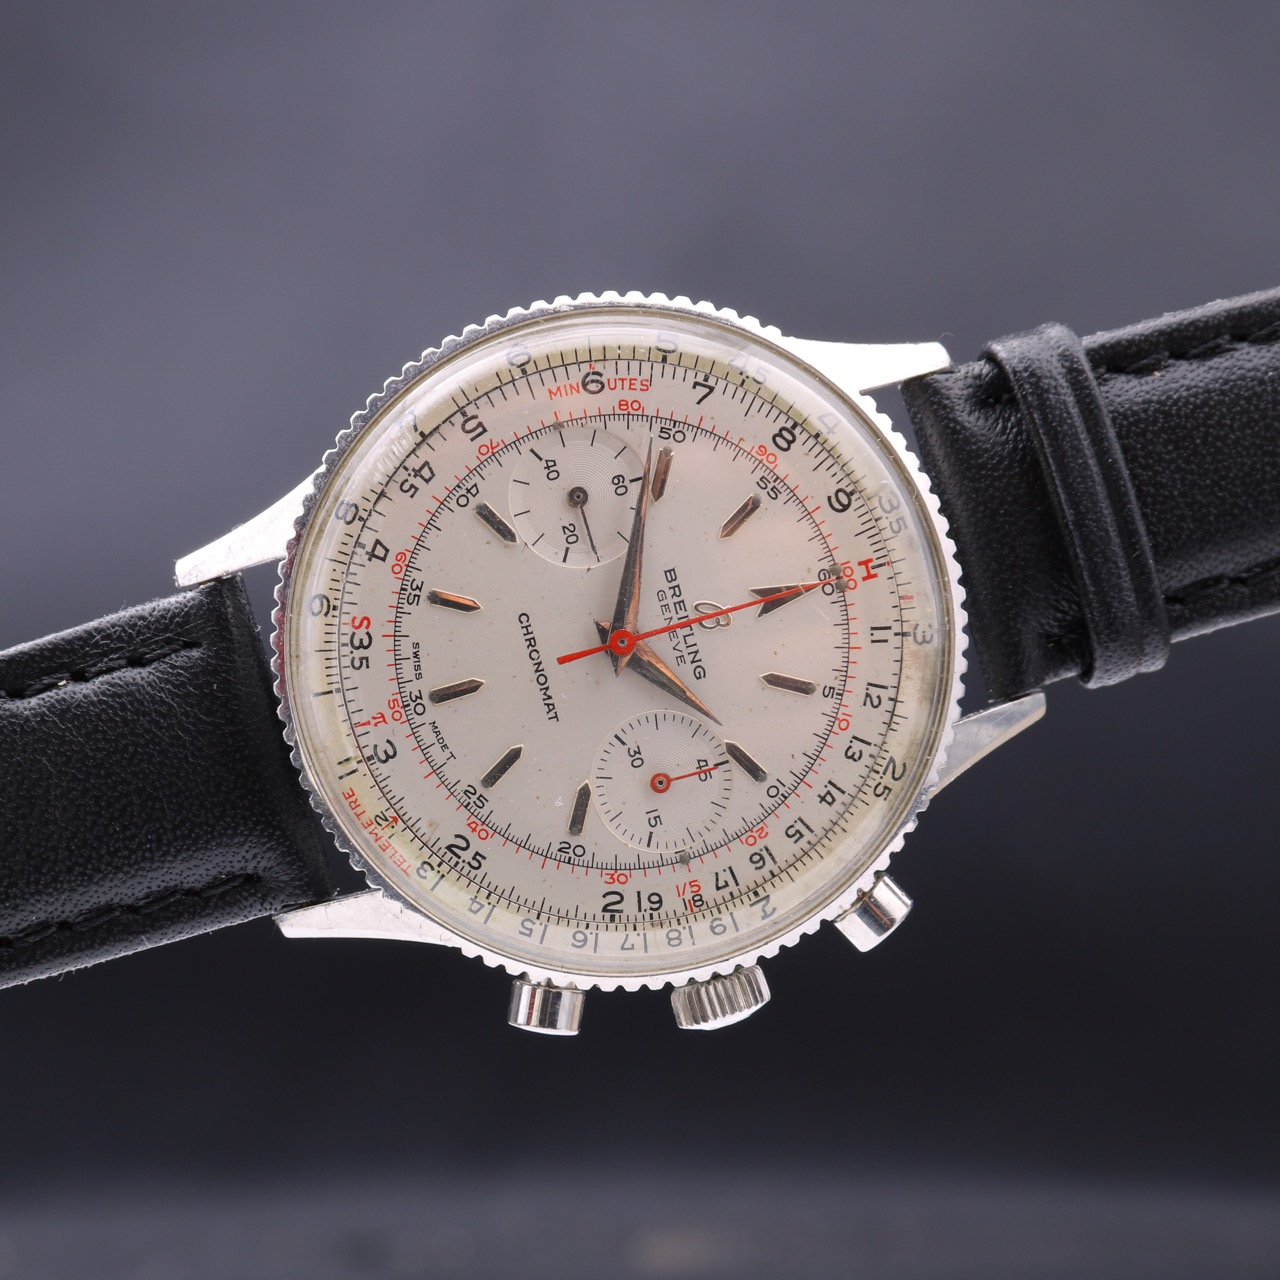 breitling vintage watches jpg 1152x768